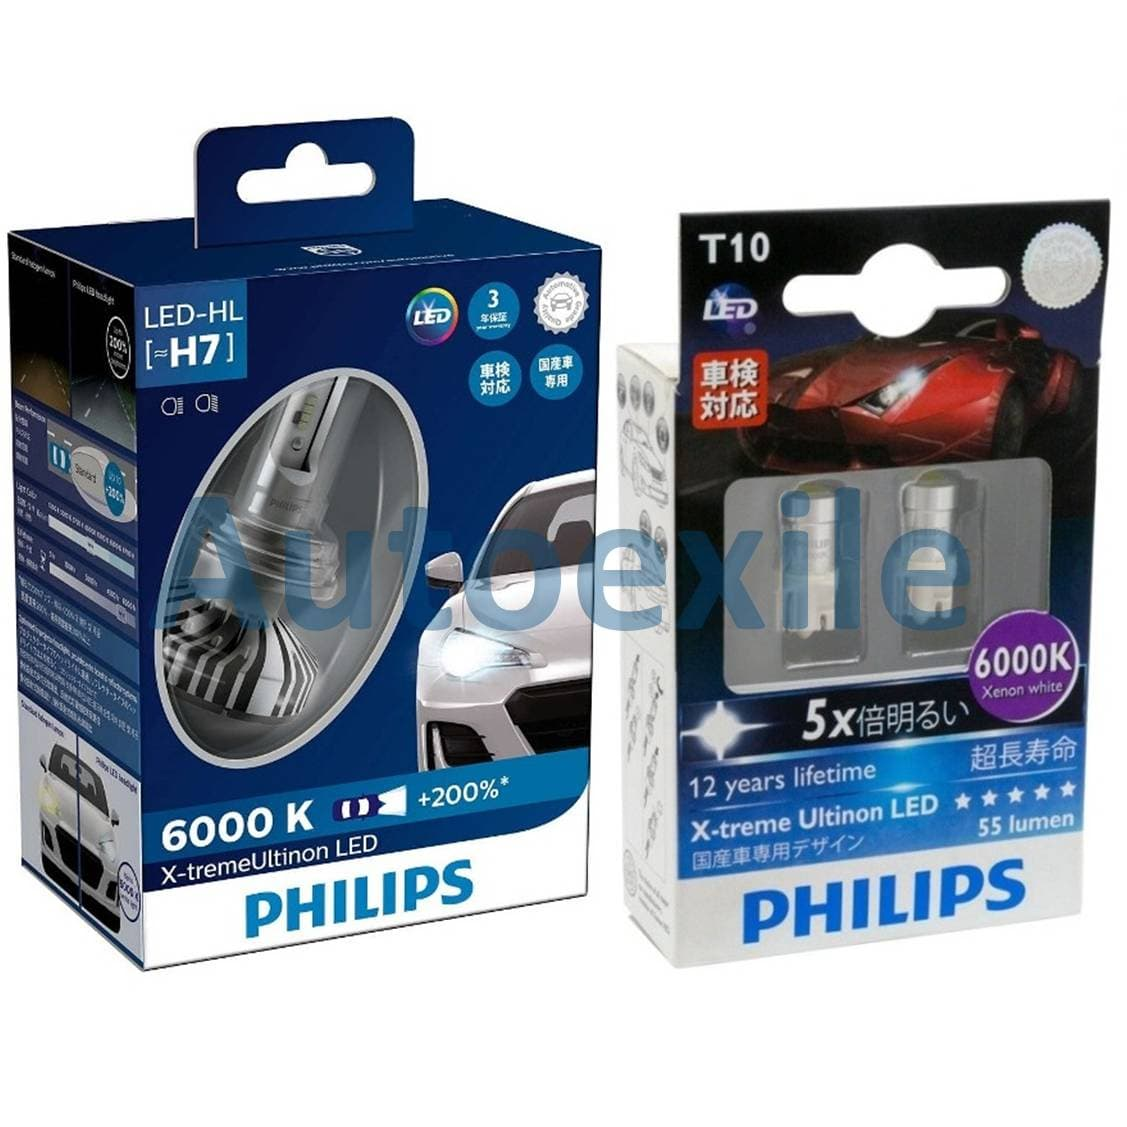 jual produk philips led online termurah autoexile. Black Bedroom Furniture Sets. Home Design Ideas